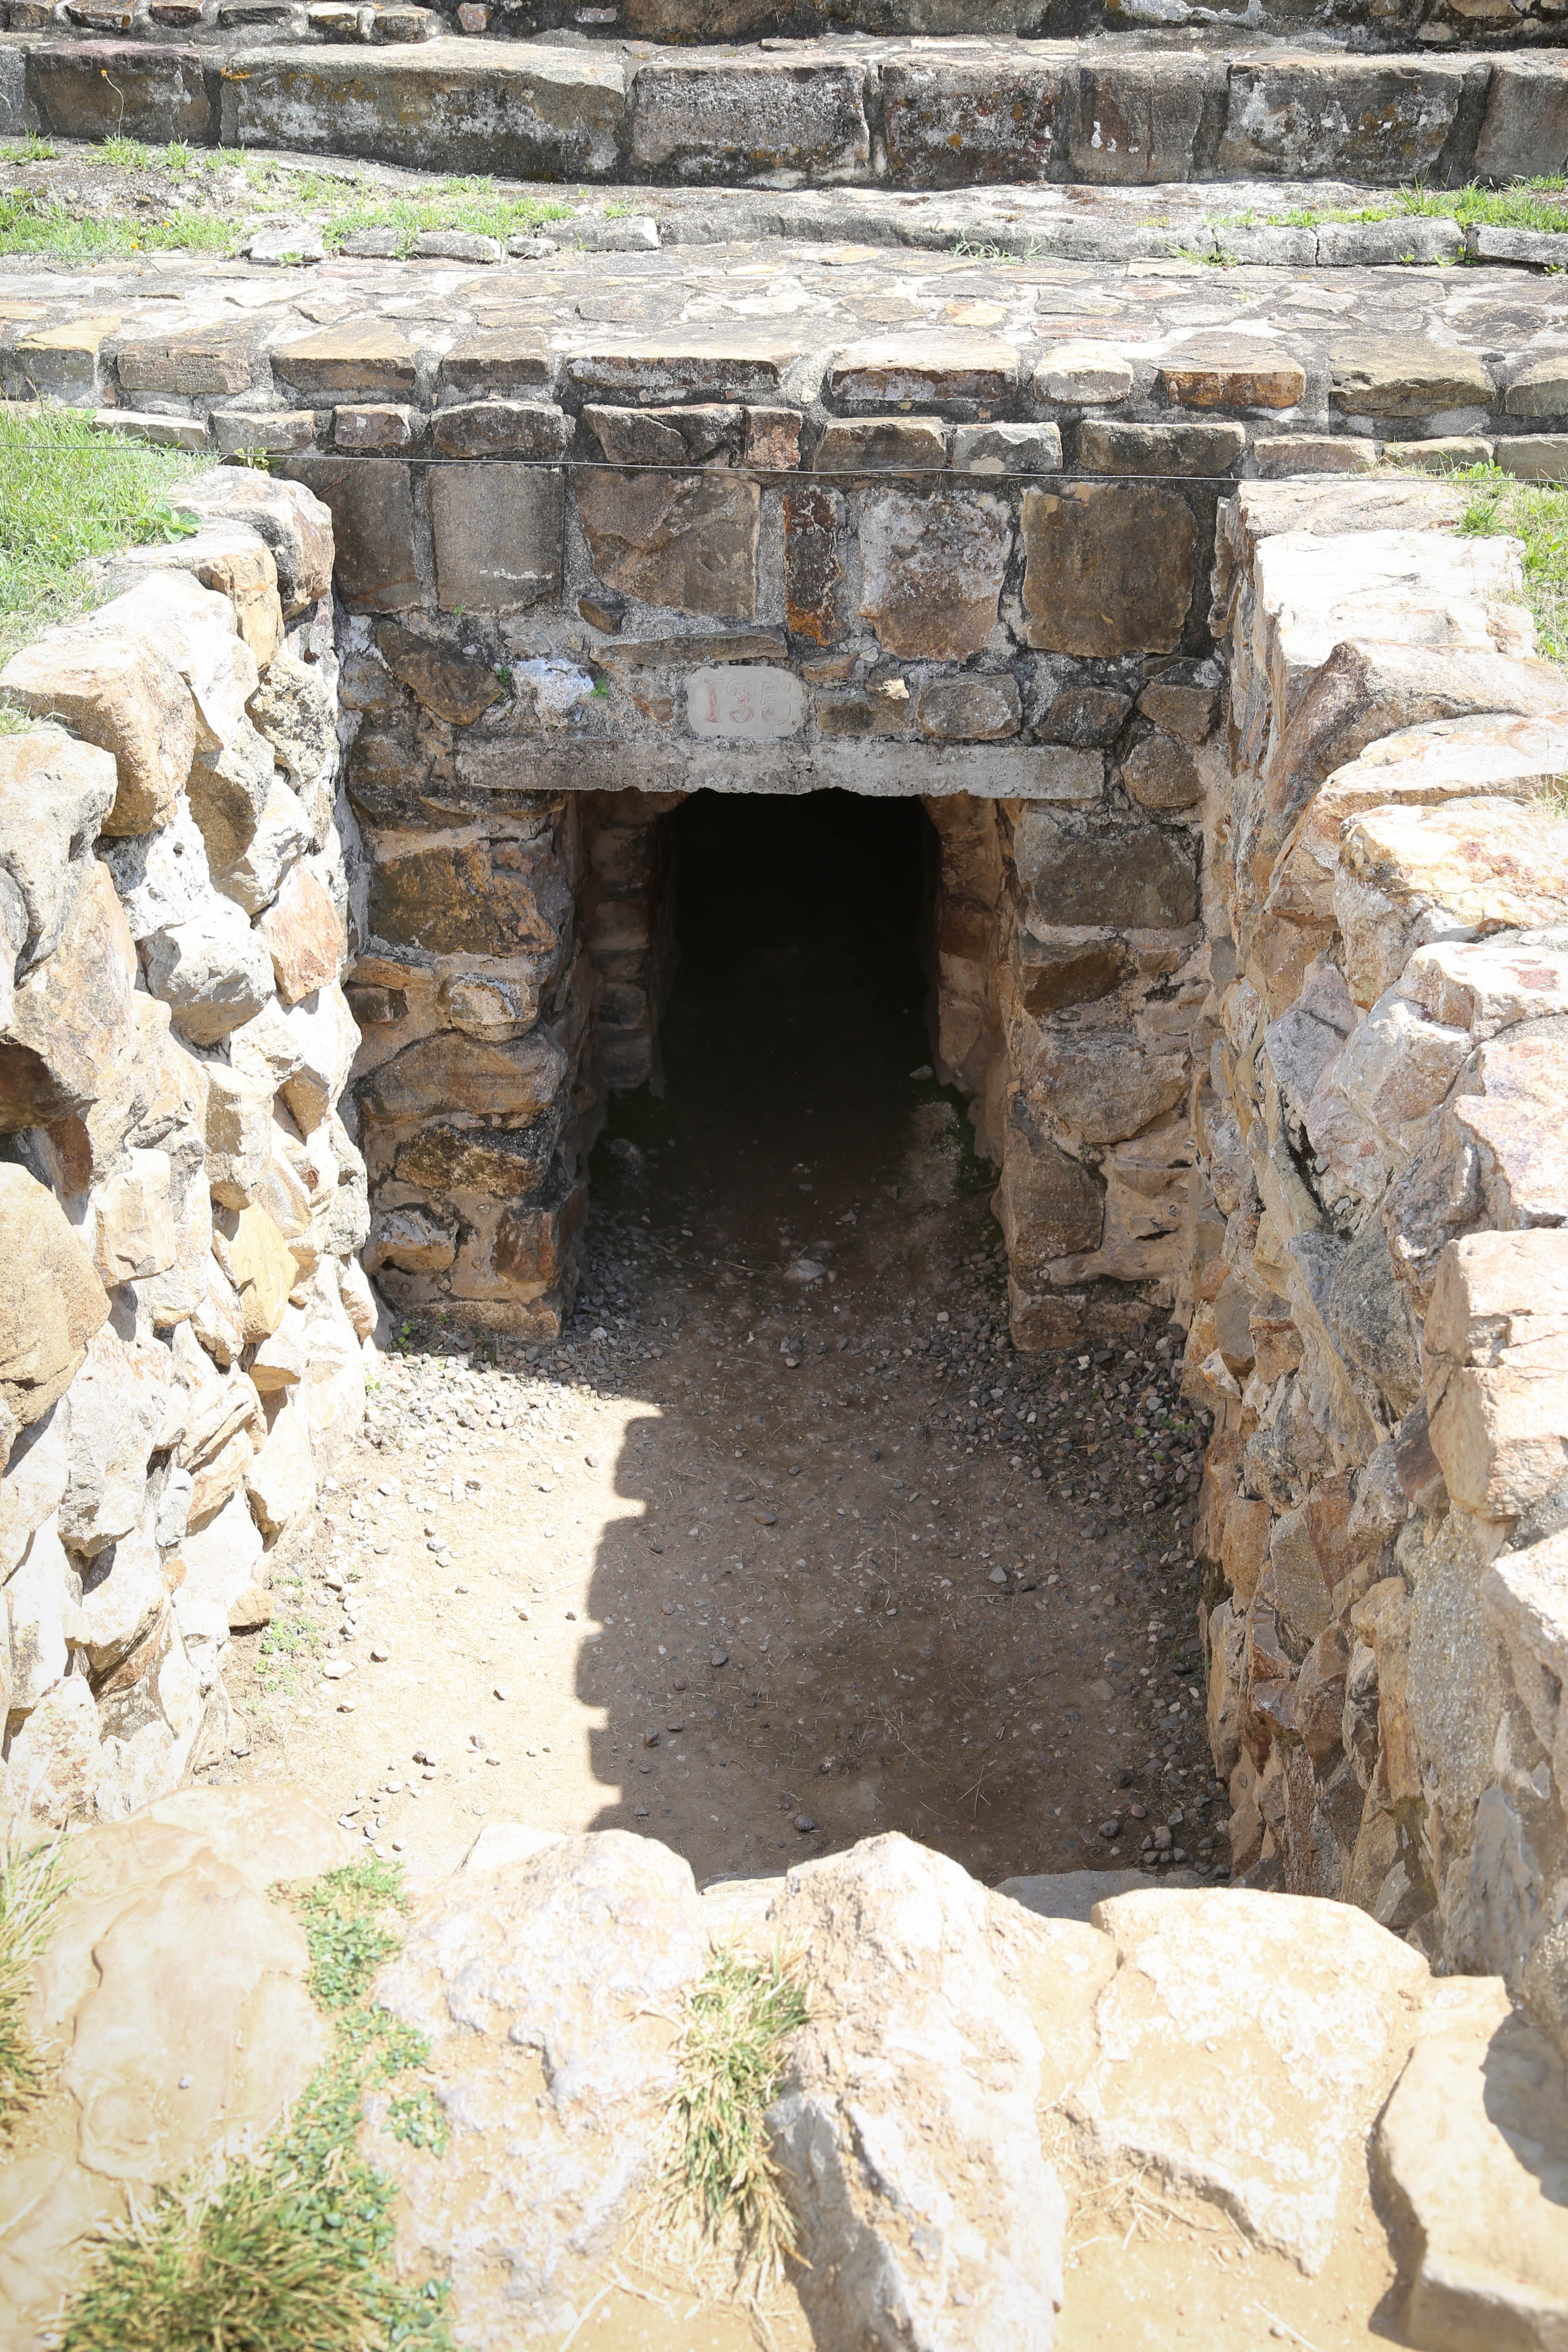 This leads to a burial chamber, an important place for those who lived there and for modern-day researchers.